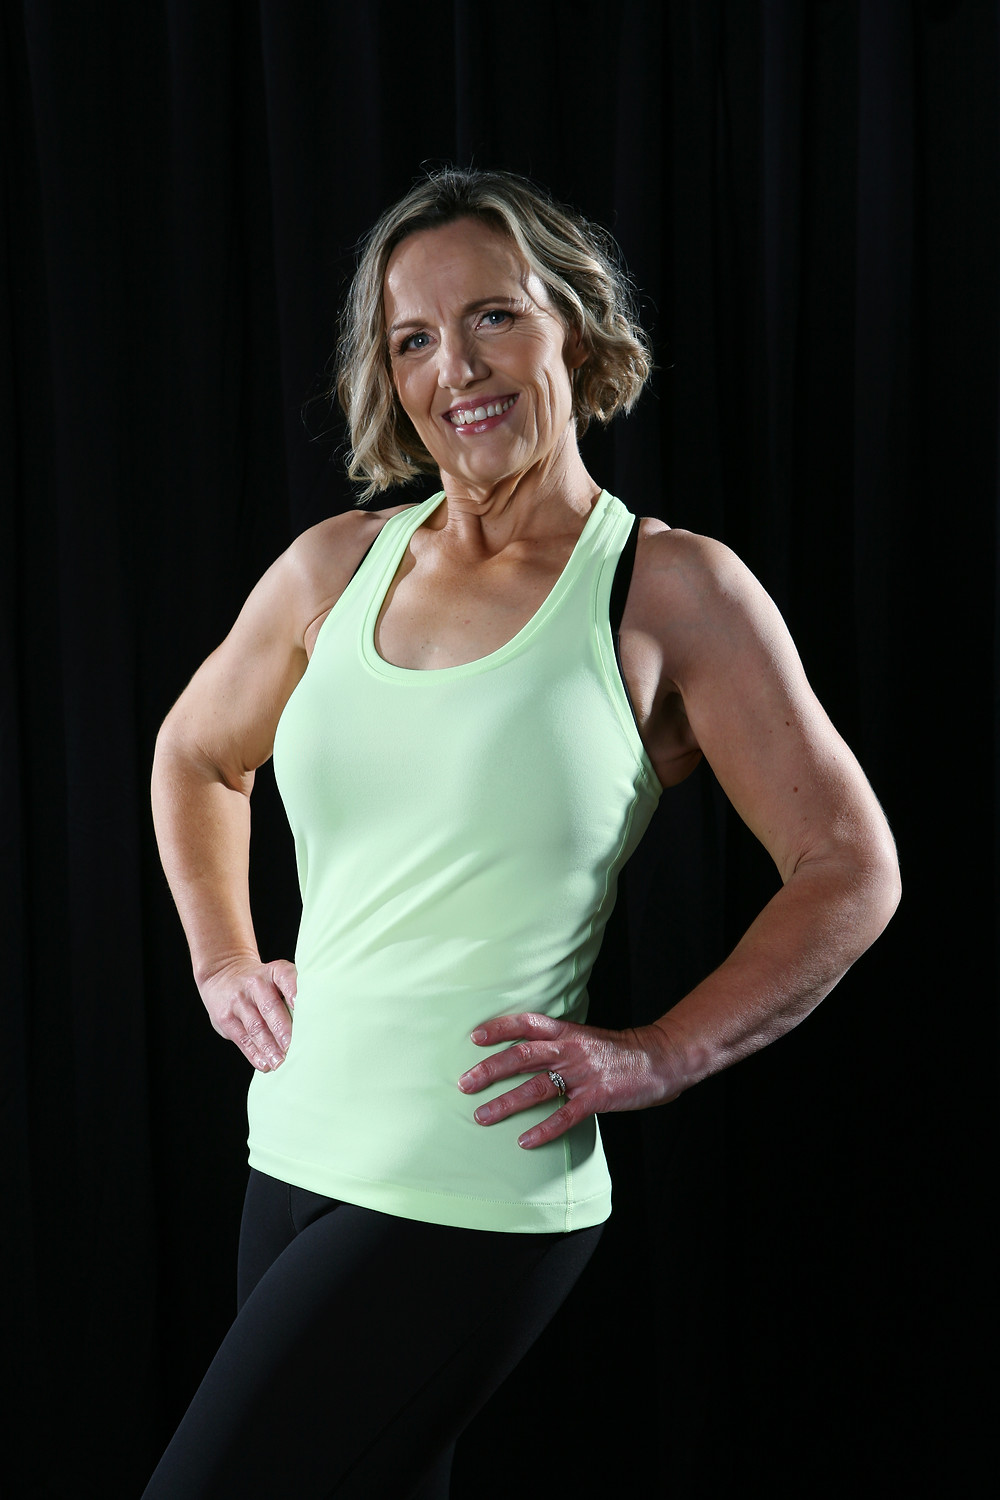 Lisa, a Fitness Challenge Participant